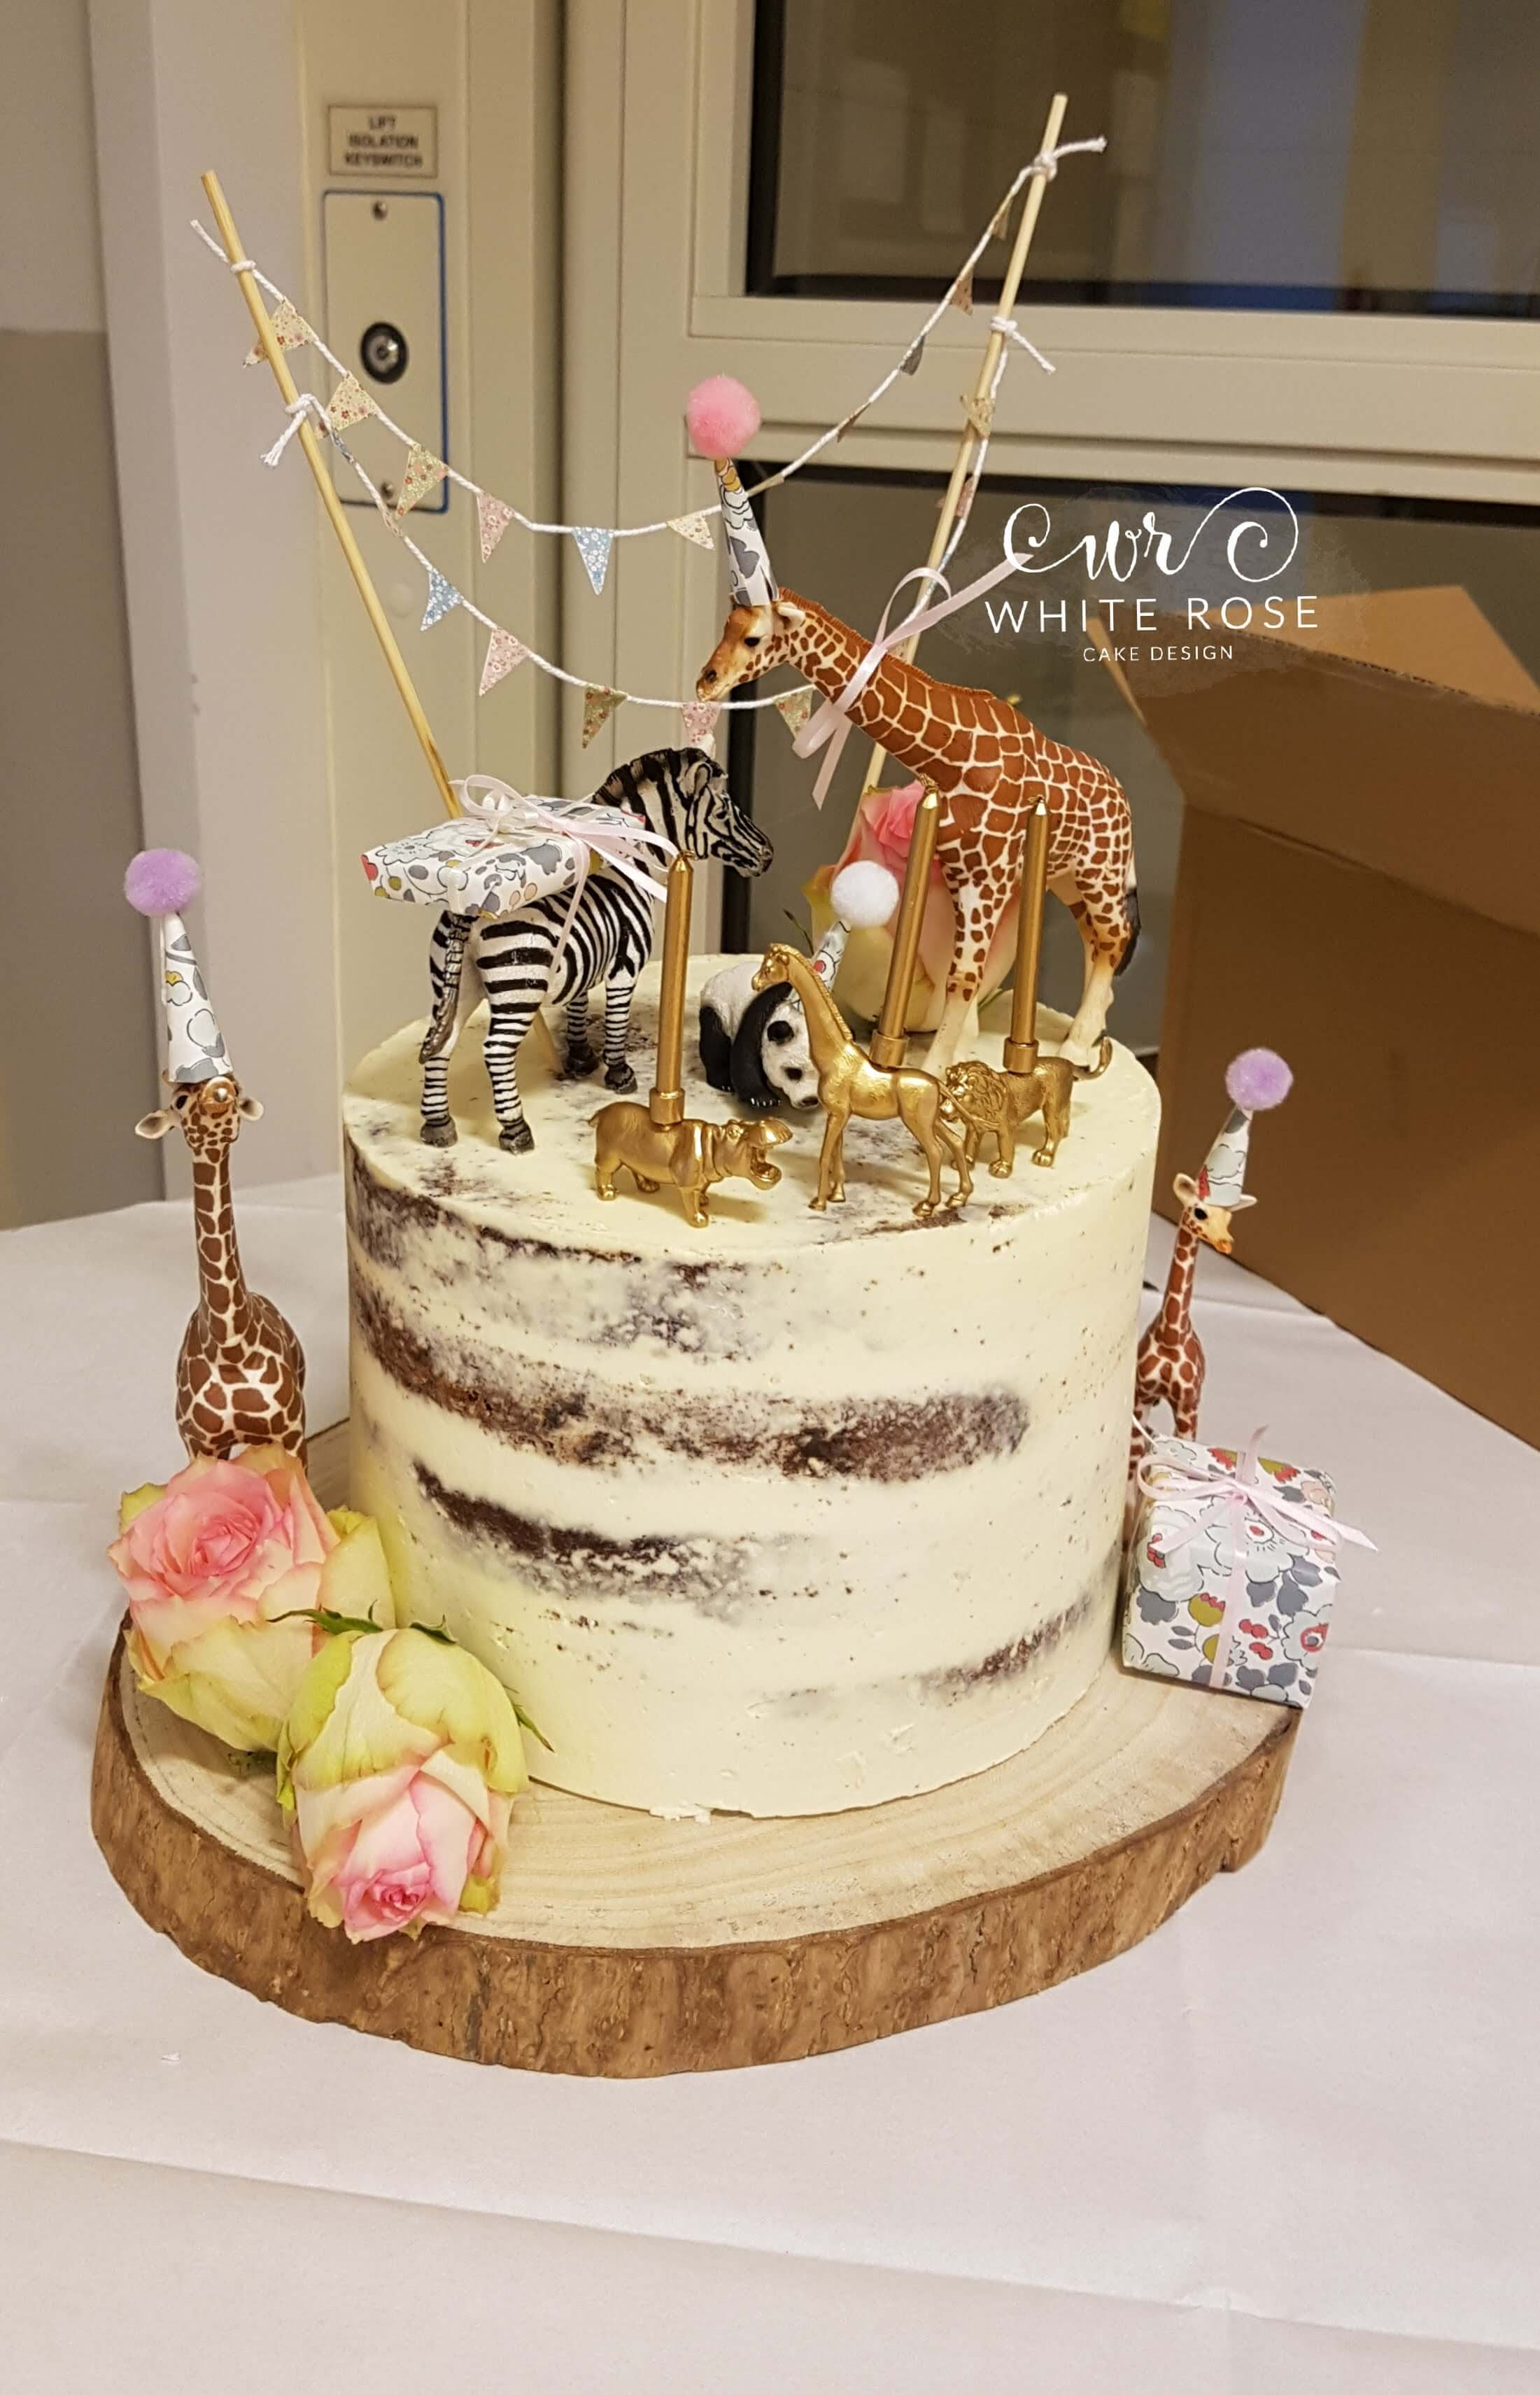 Girly Safari Jungle Themed 3rd Birthday Cake by White Rose Cake Design